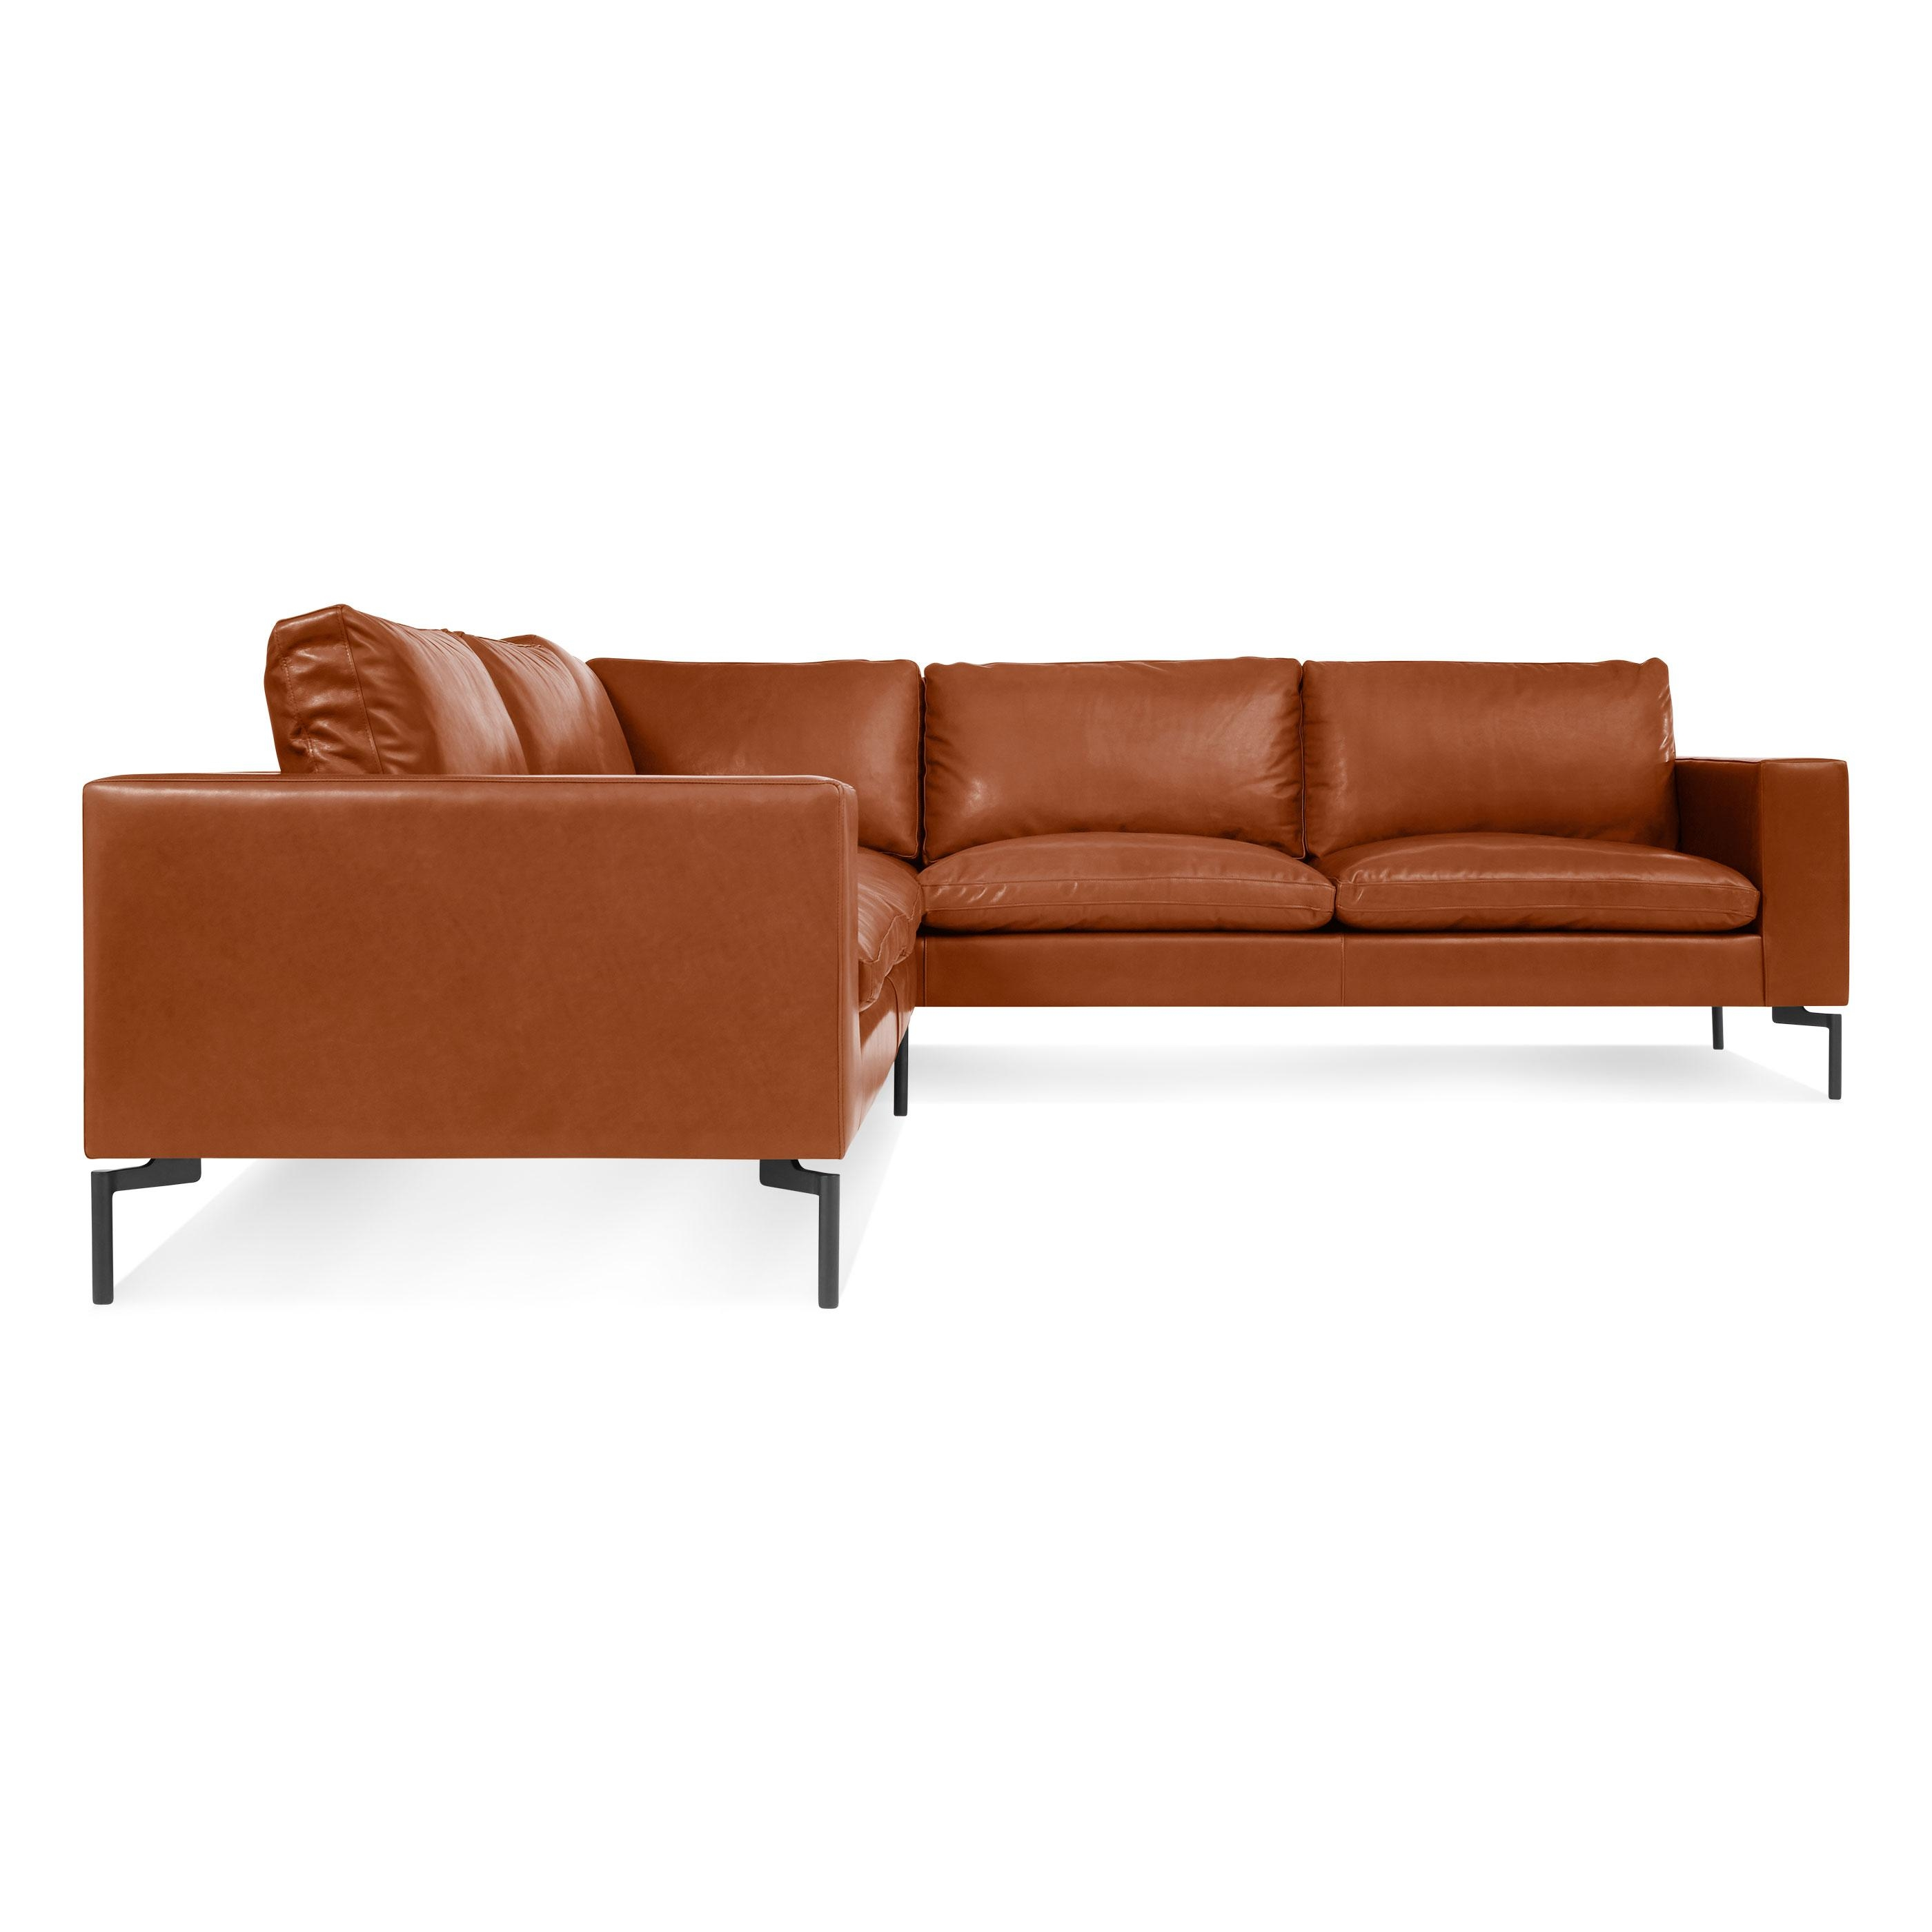 New Standard Small Leather Sectional – Modern Leather Sofa | Blu Dot Pertaining To Modern Small Sectional Sofas (View 9 of 20)